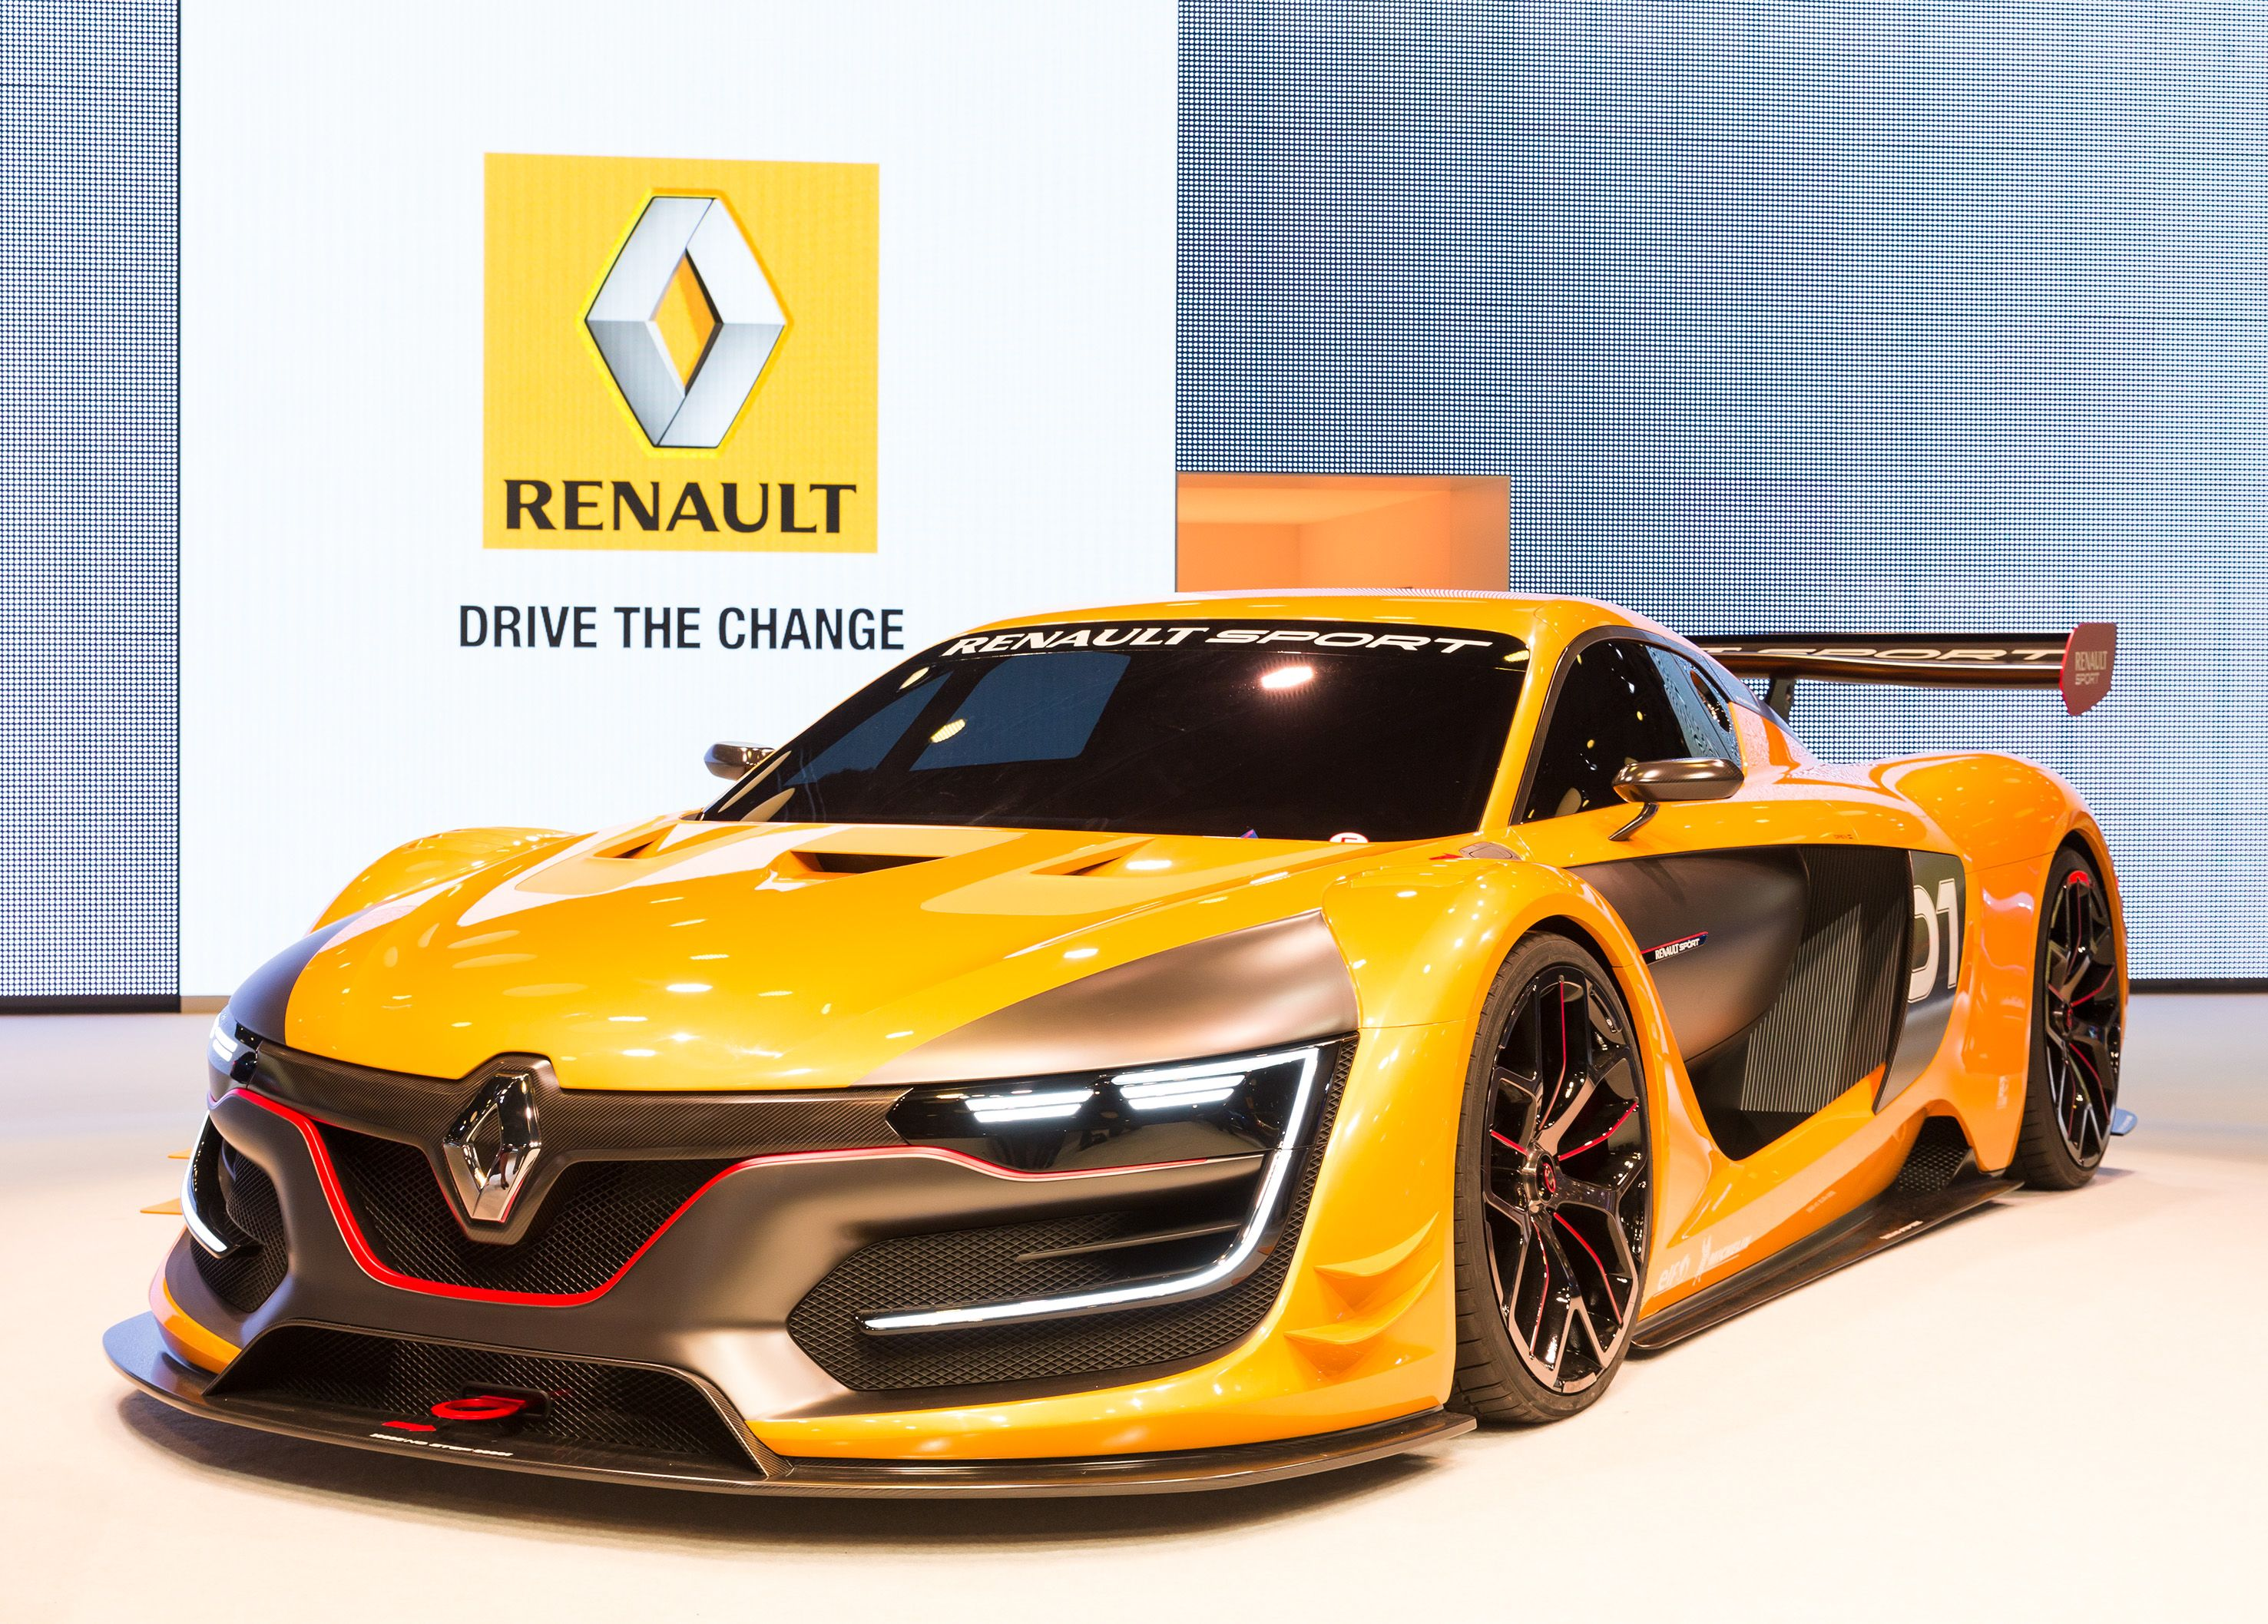 renault sport r s 01 taxi locations in los angeles pinterest cars supercars and sports cars. Black Bedroom Furniture Sets. Home Design Ideas